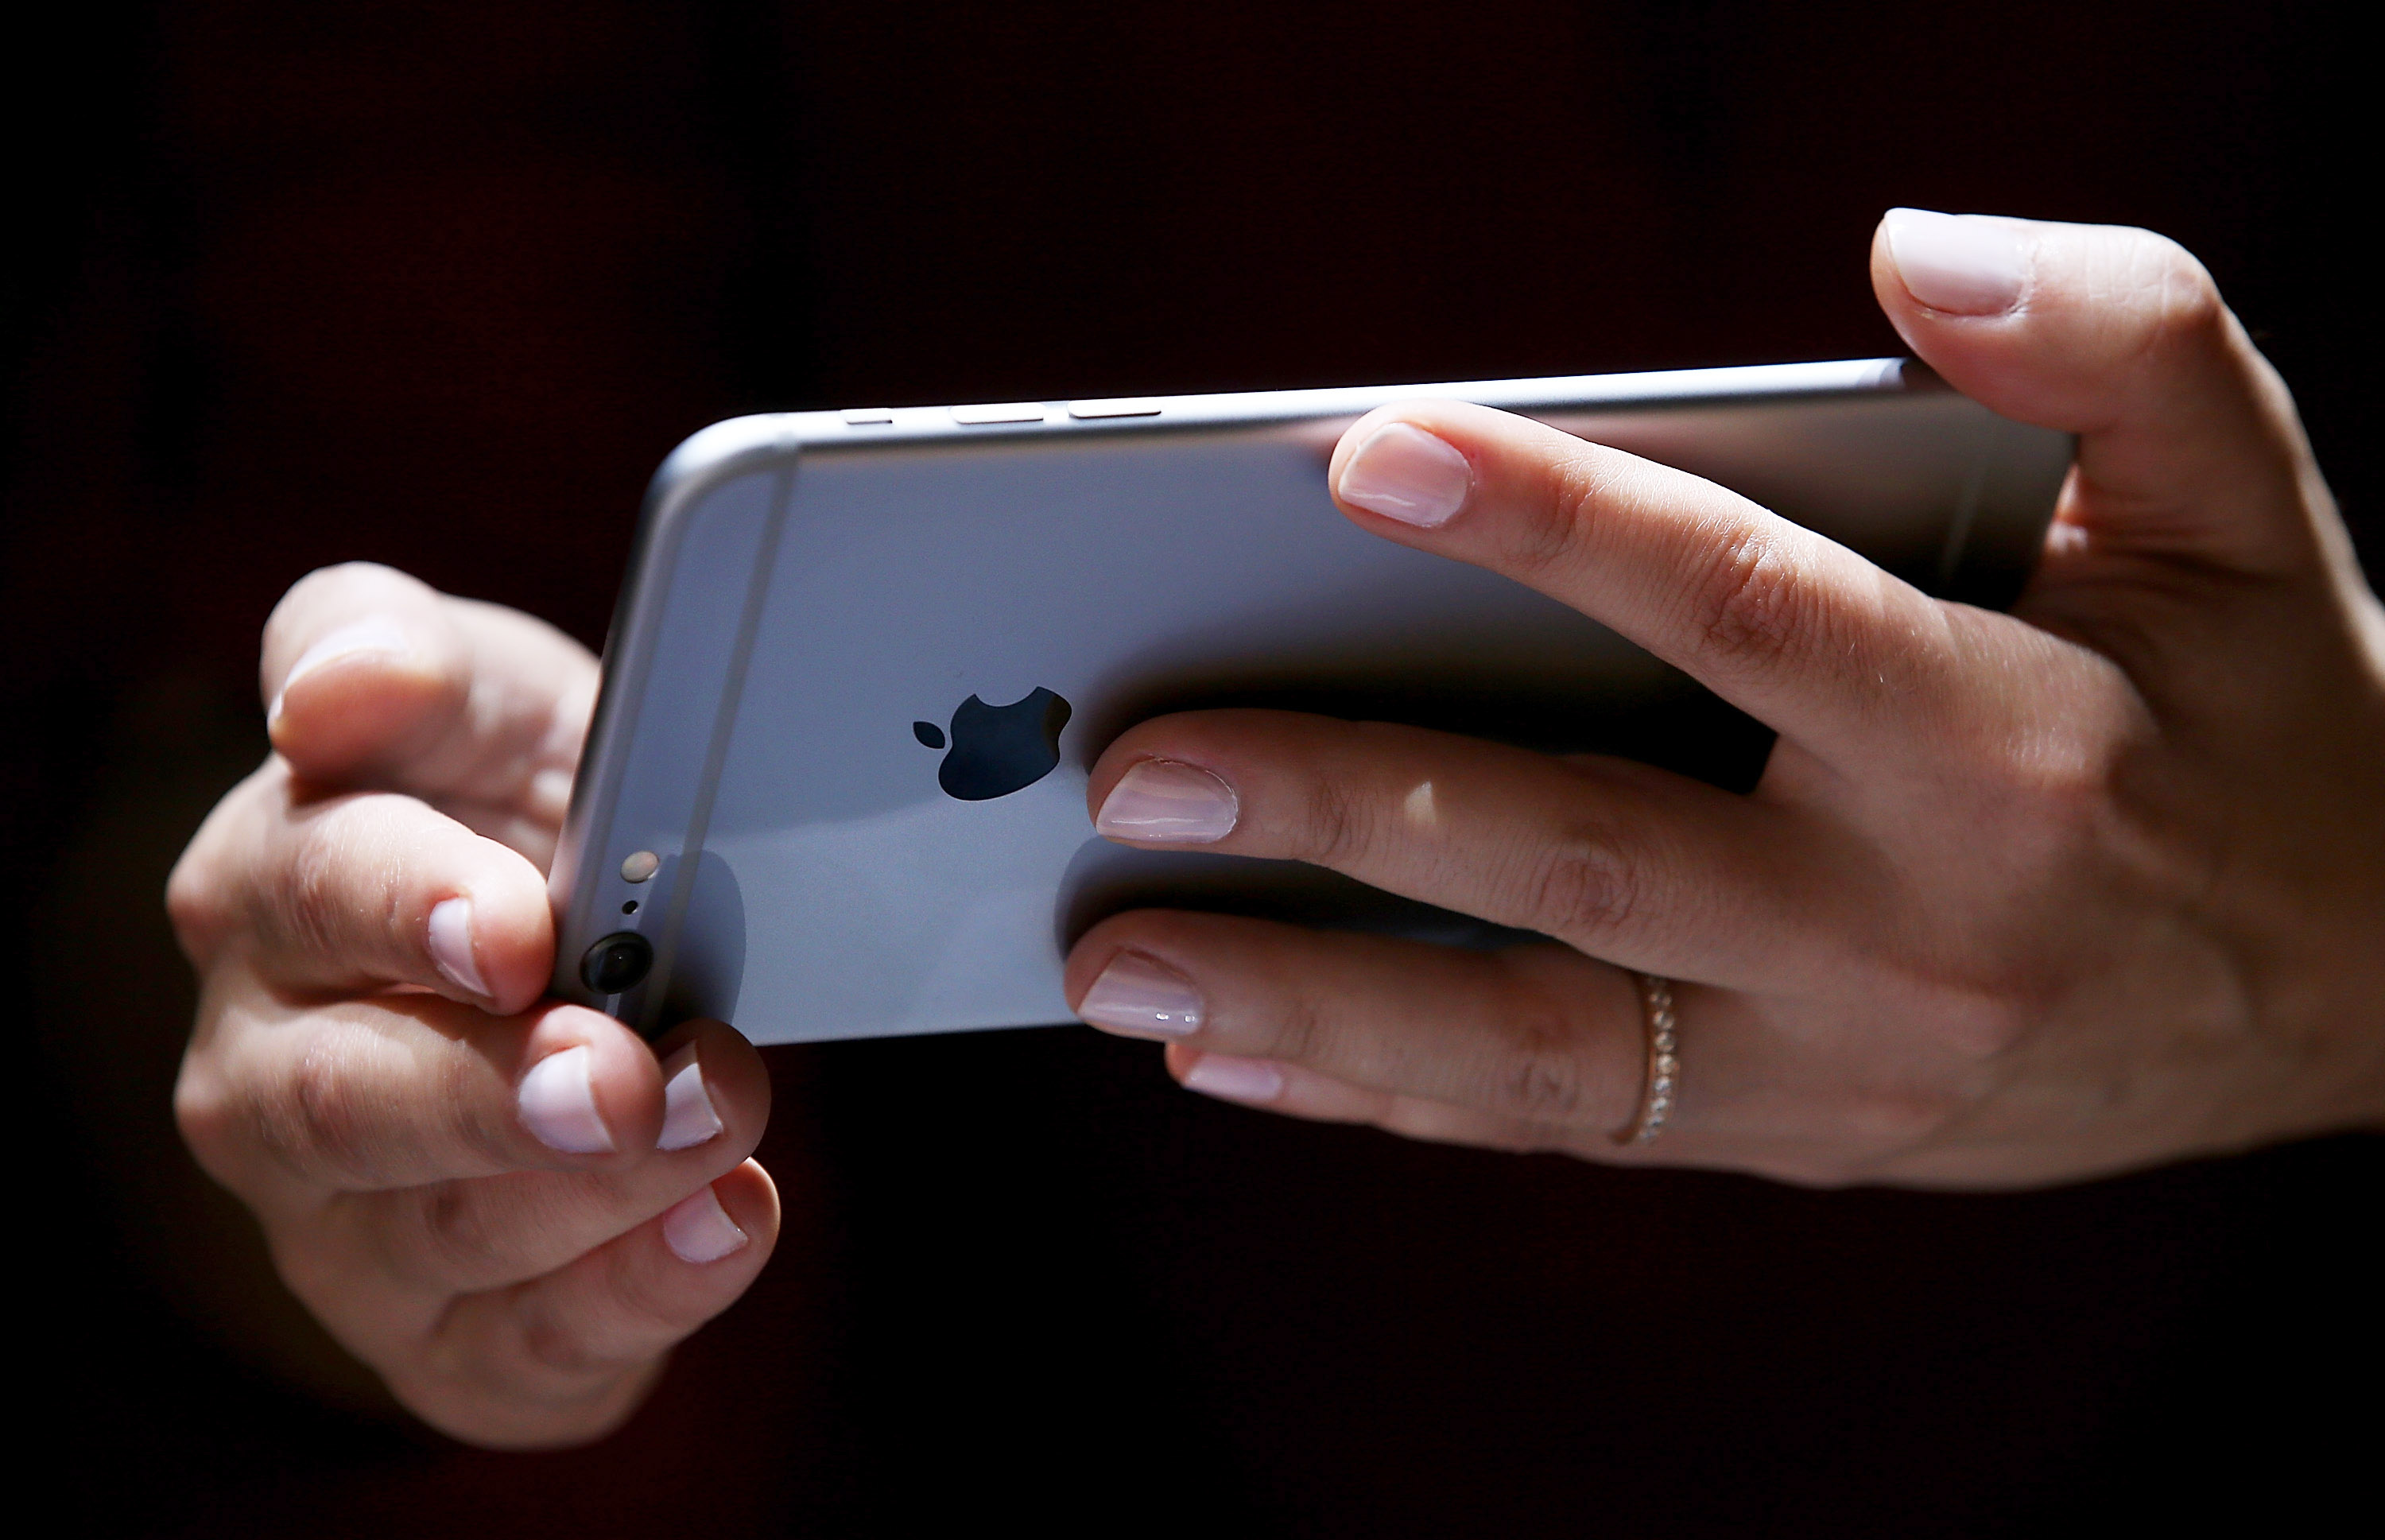 A member of the media inspects the new iPhone 6 during an Apple special event at the Flint Center for the Performing Arts on September 9, 2014 in Cupertino, California.